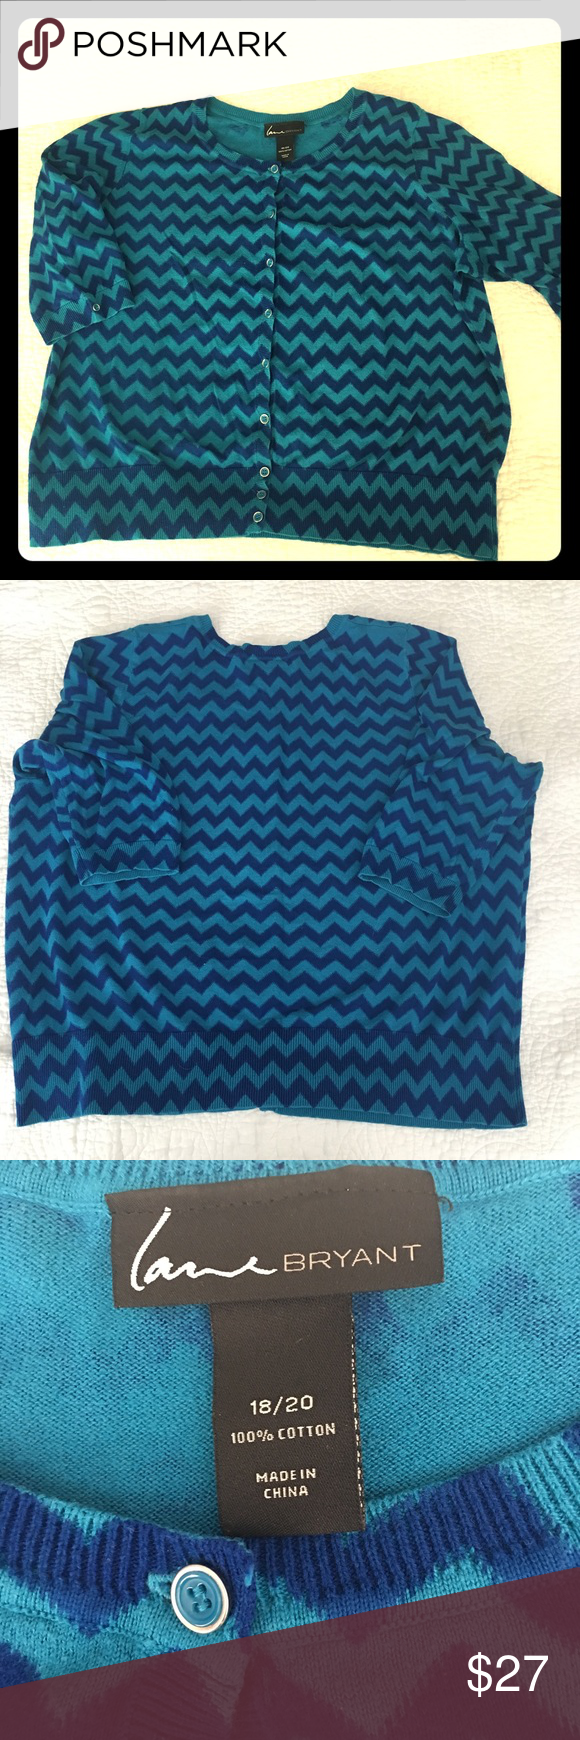 { Lane Bryant } Blue Chevron Cardigan Size 18/20. Add this sassy chevron pattern to your closet for multiple looks. Pairs well with skinny jeans and heels for a hint of rockabilly, or with  sleeveless dresses and tops for an extra layer of warmth. Blue buttons add a nice detail to the cuffs. Wear buttoned-up, or open, and toss in your bag for later. Machine-washable, no damage. Smoke-free home. Lane Bryant Sweaters Cardigans